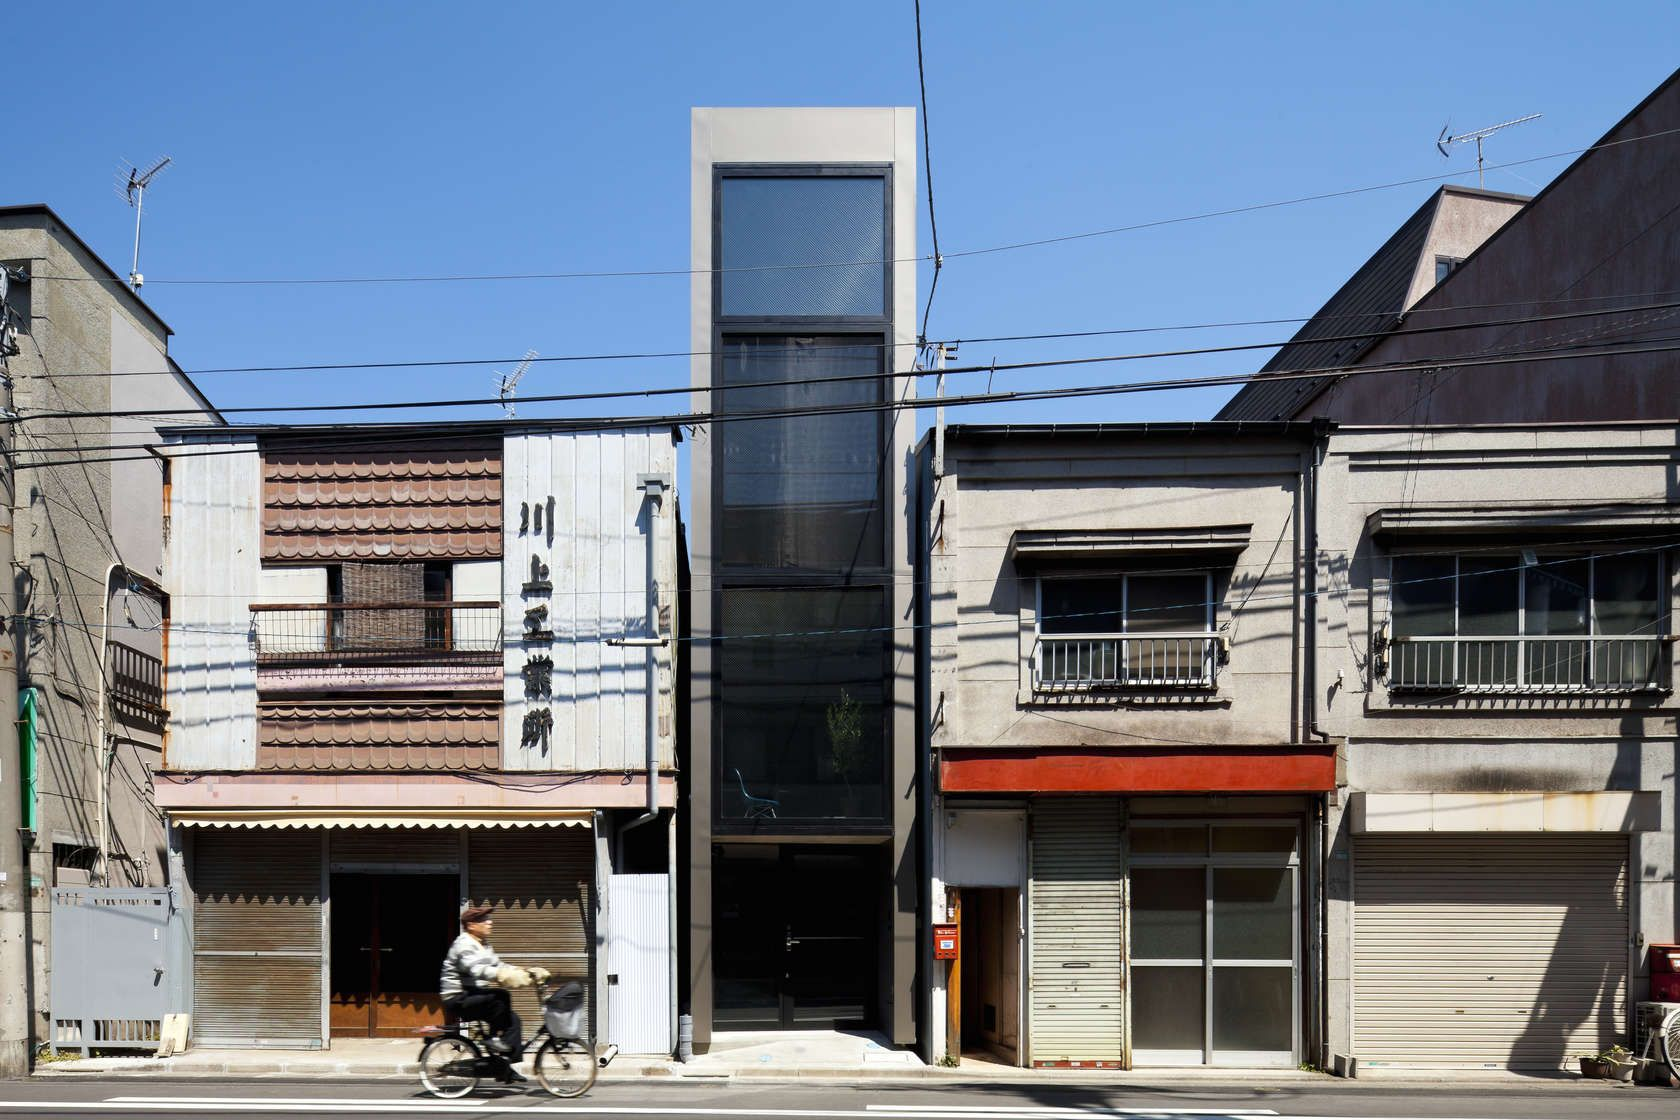 Width house is a private home located in toshima japan it was designed by yuua architects associates in photos by toshihiro sobajima